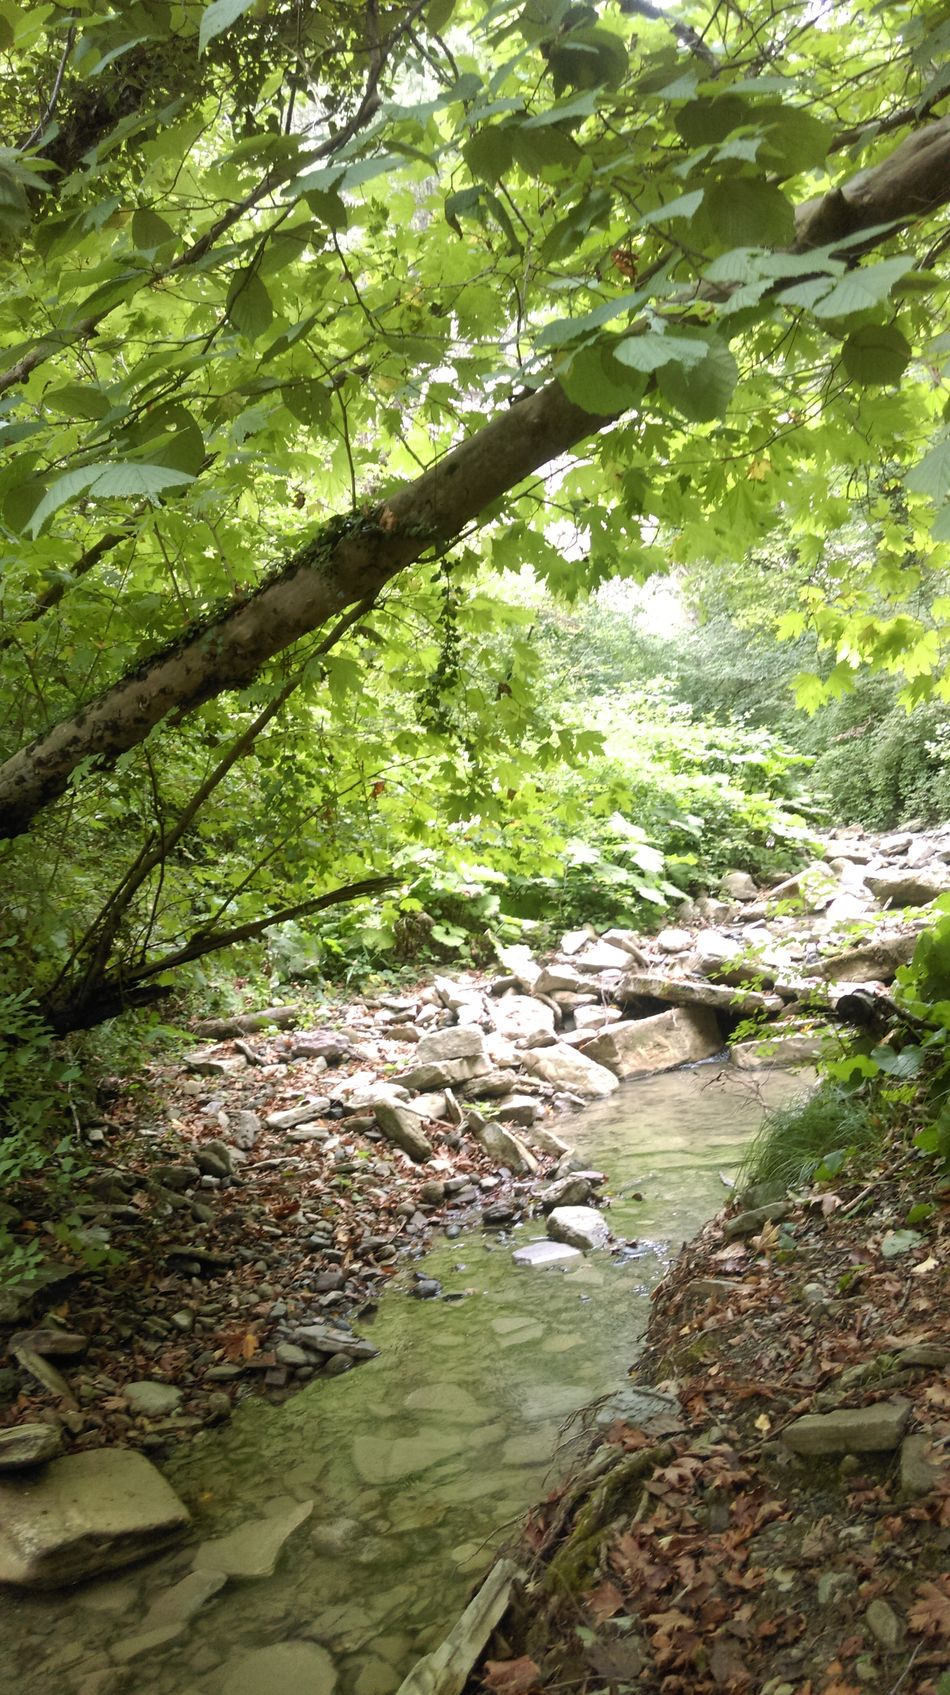 TakeoverContrast nature Forest Water Green Color Tree Non-urban Scene Branch Growth River Tranquility Stream WoodLand Flowing Tree Trunk Beauty In Nature Wilderness Nature Scenics Tranquil Scene Flowing Water Day Low Section High Angle View Outdoors Overhead View